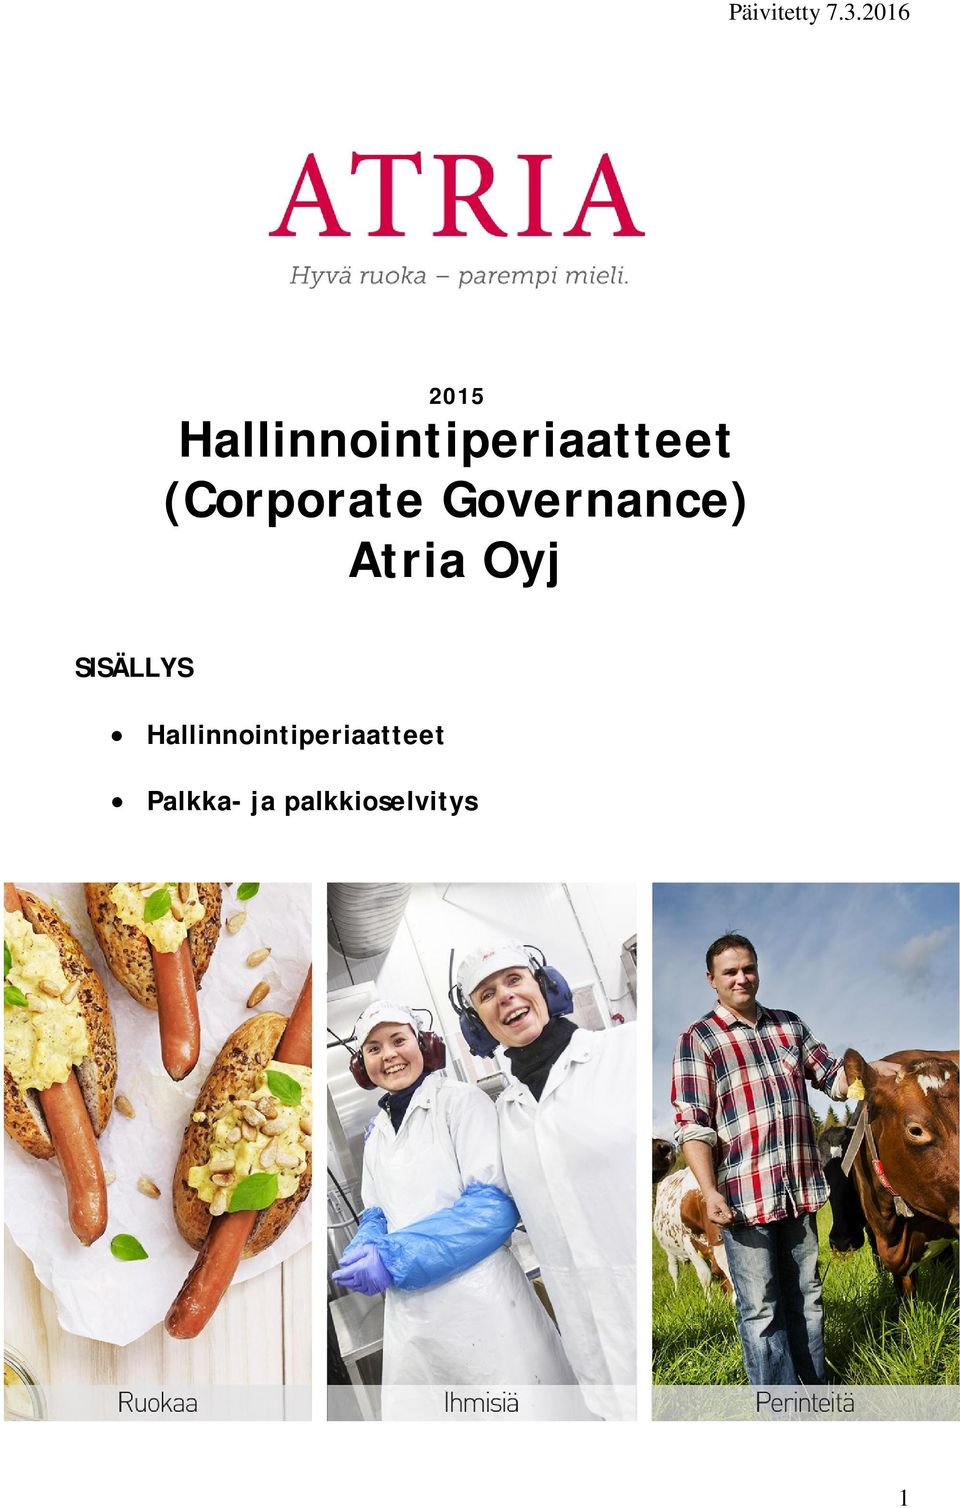 (Corporate Governance) Atria Oyj